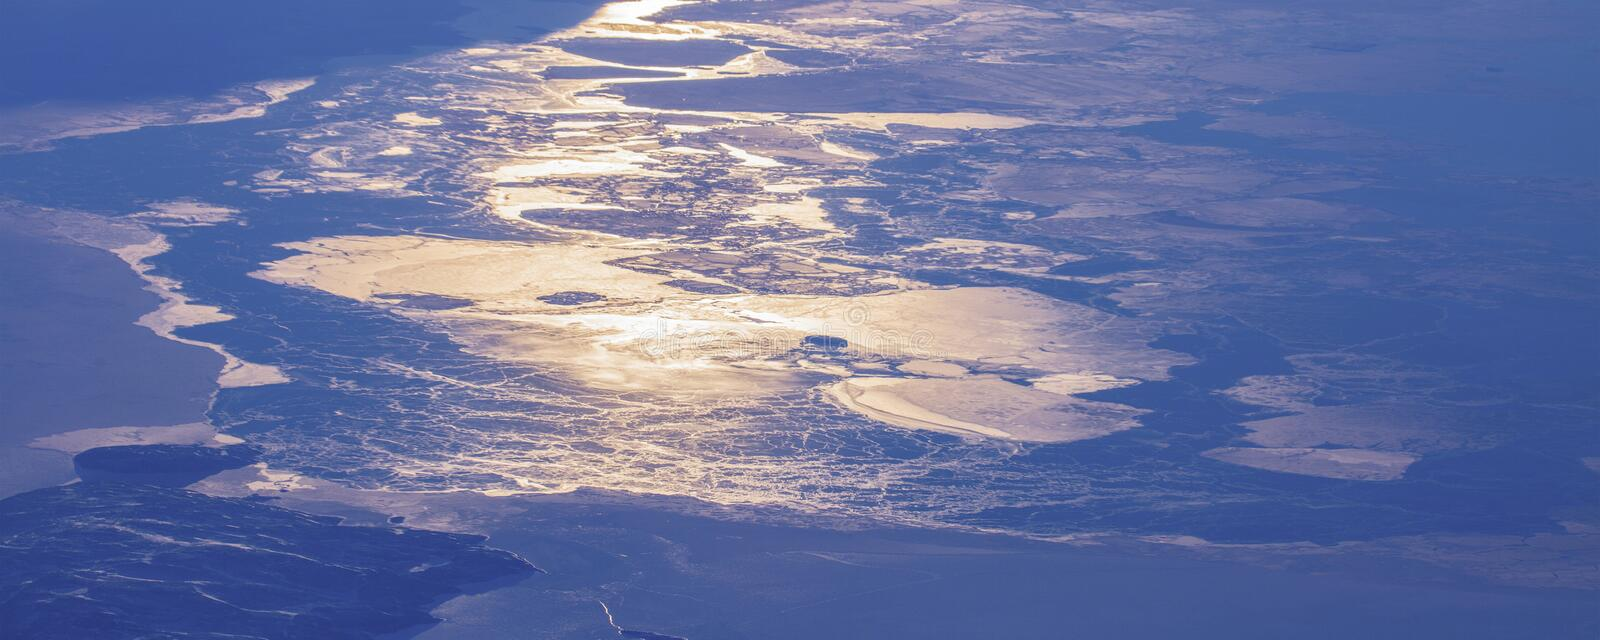 17Take an aerial view of the ice and sunrise over the bering strait.(1). The bering strait is located in the high latitudes, cold weather, many storms stock photography